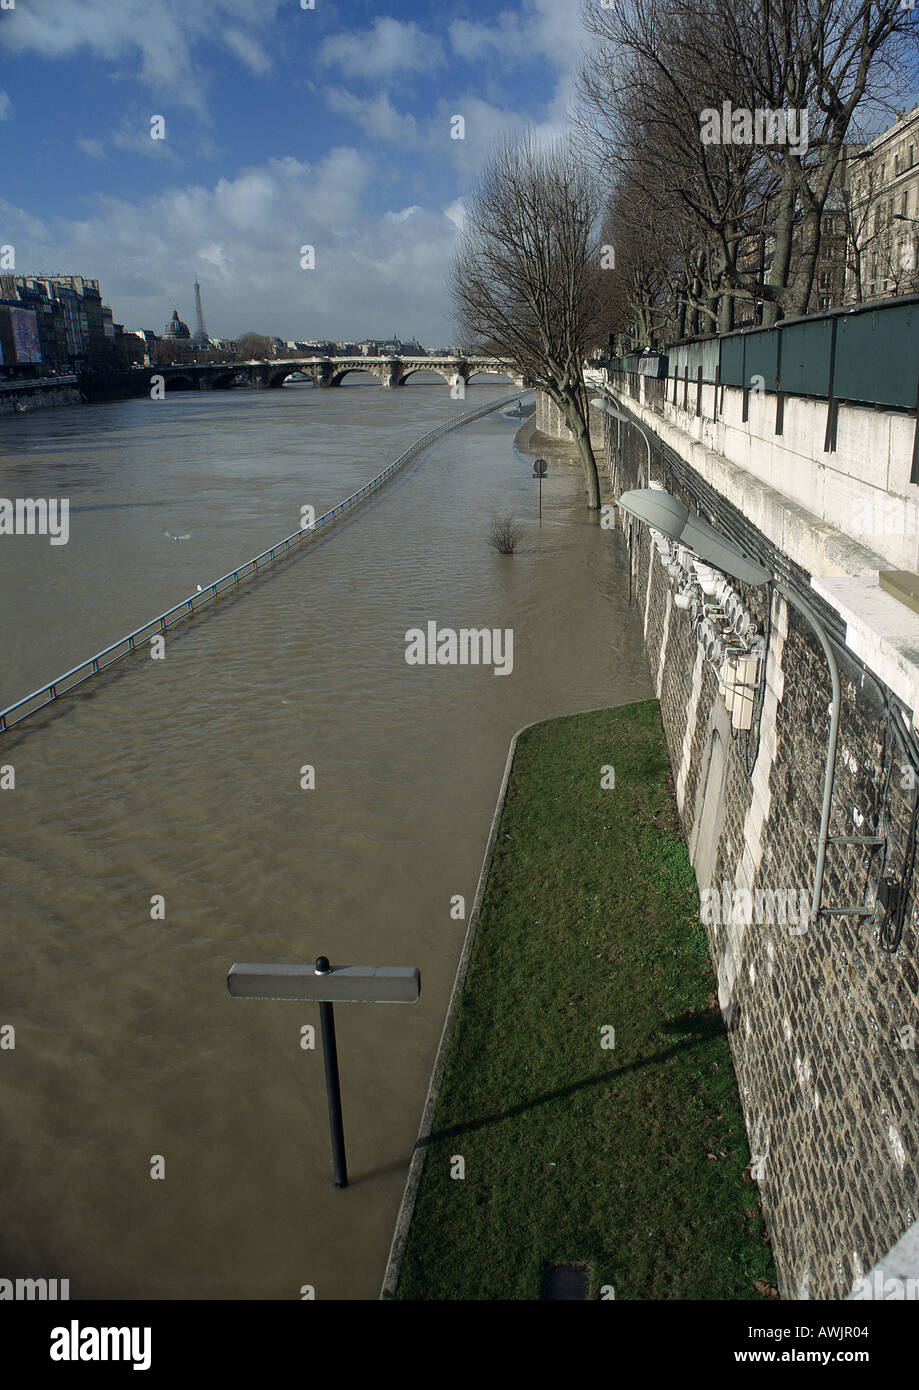 Flooded river - Stock Image